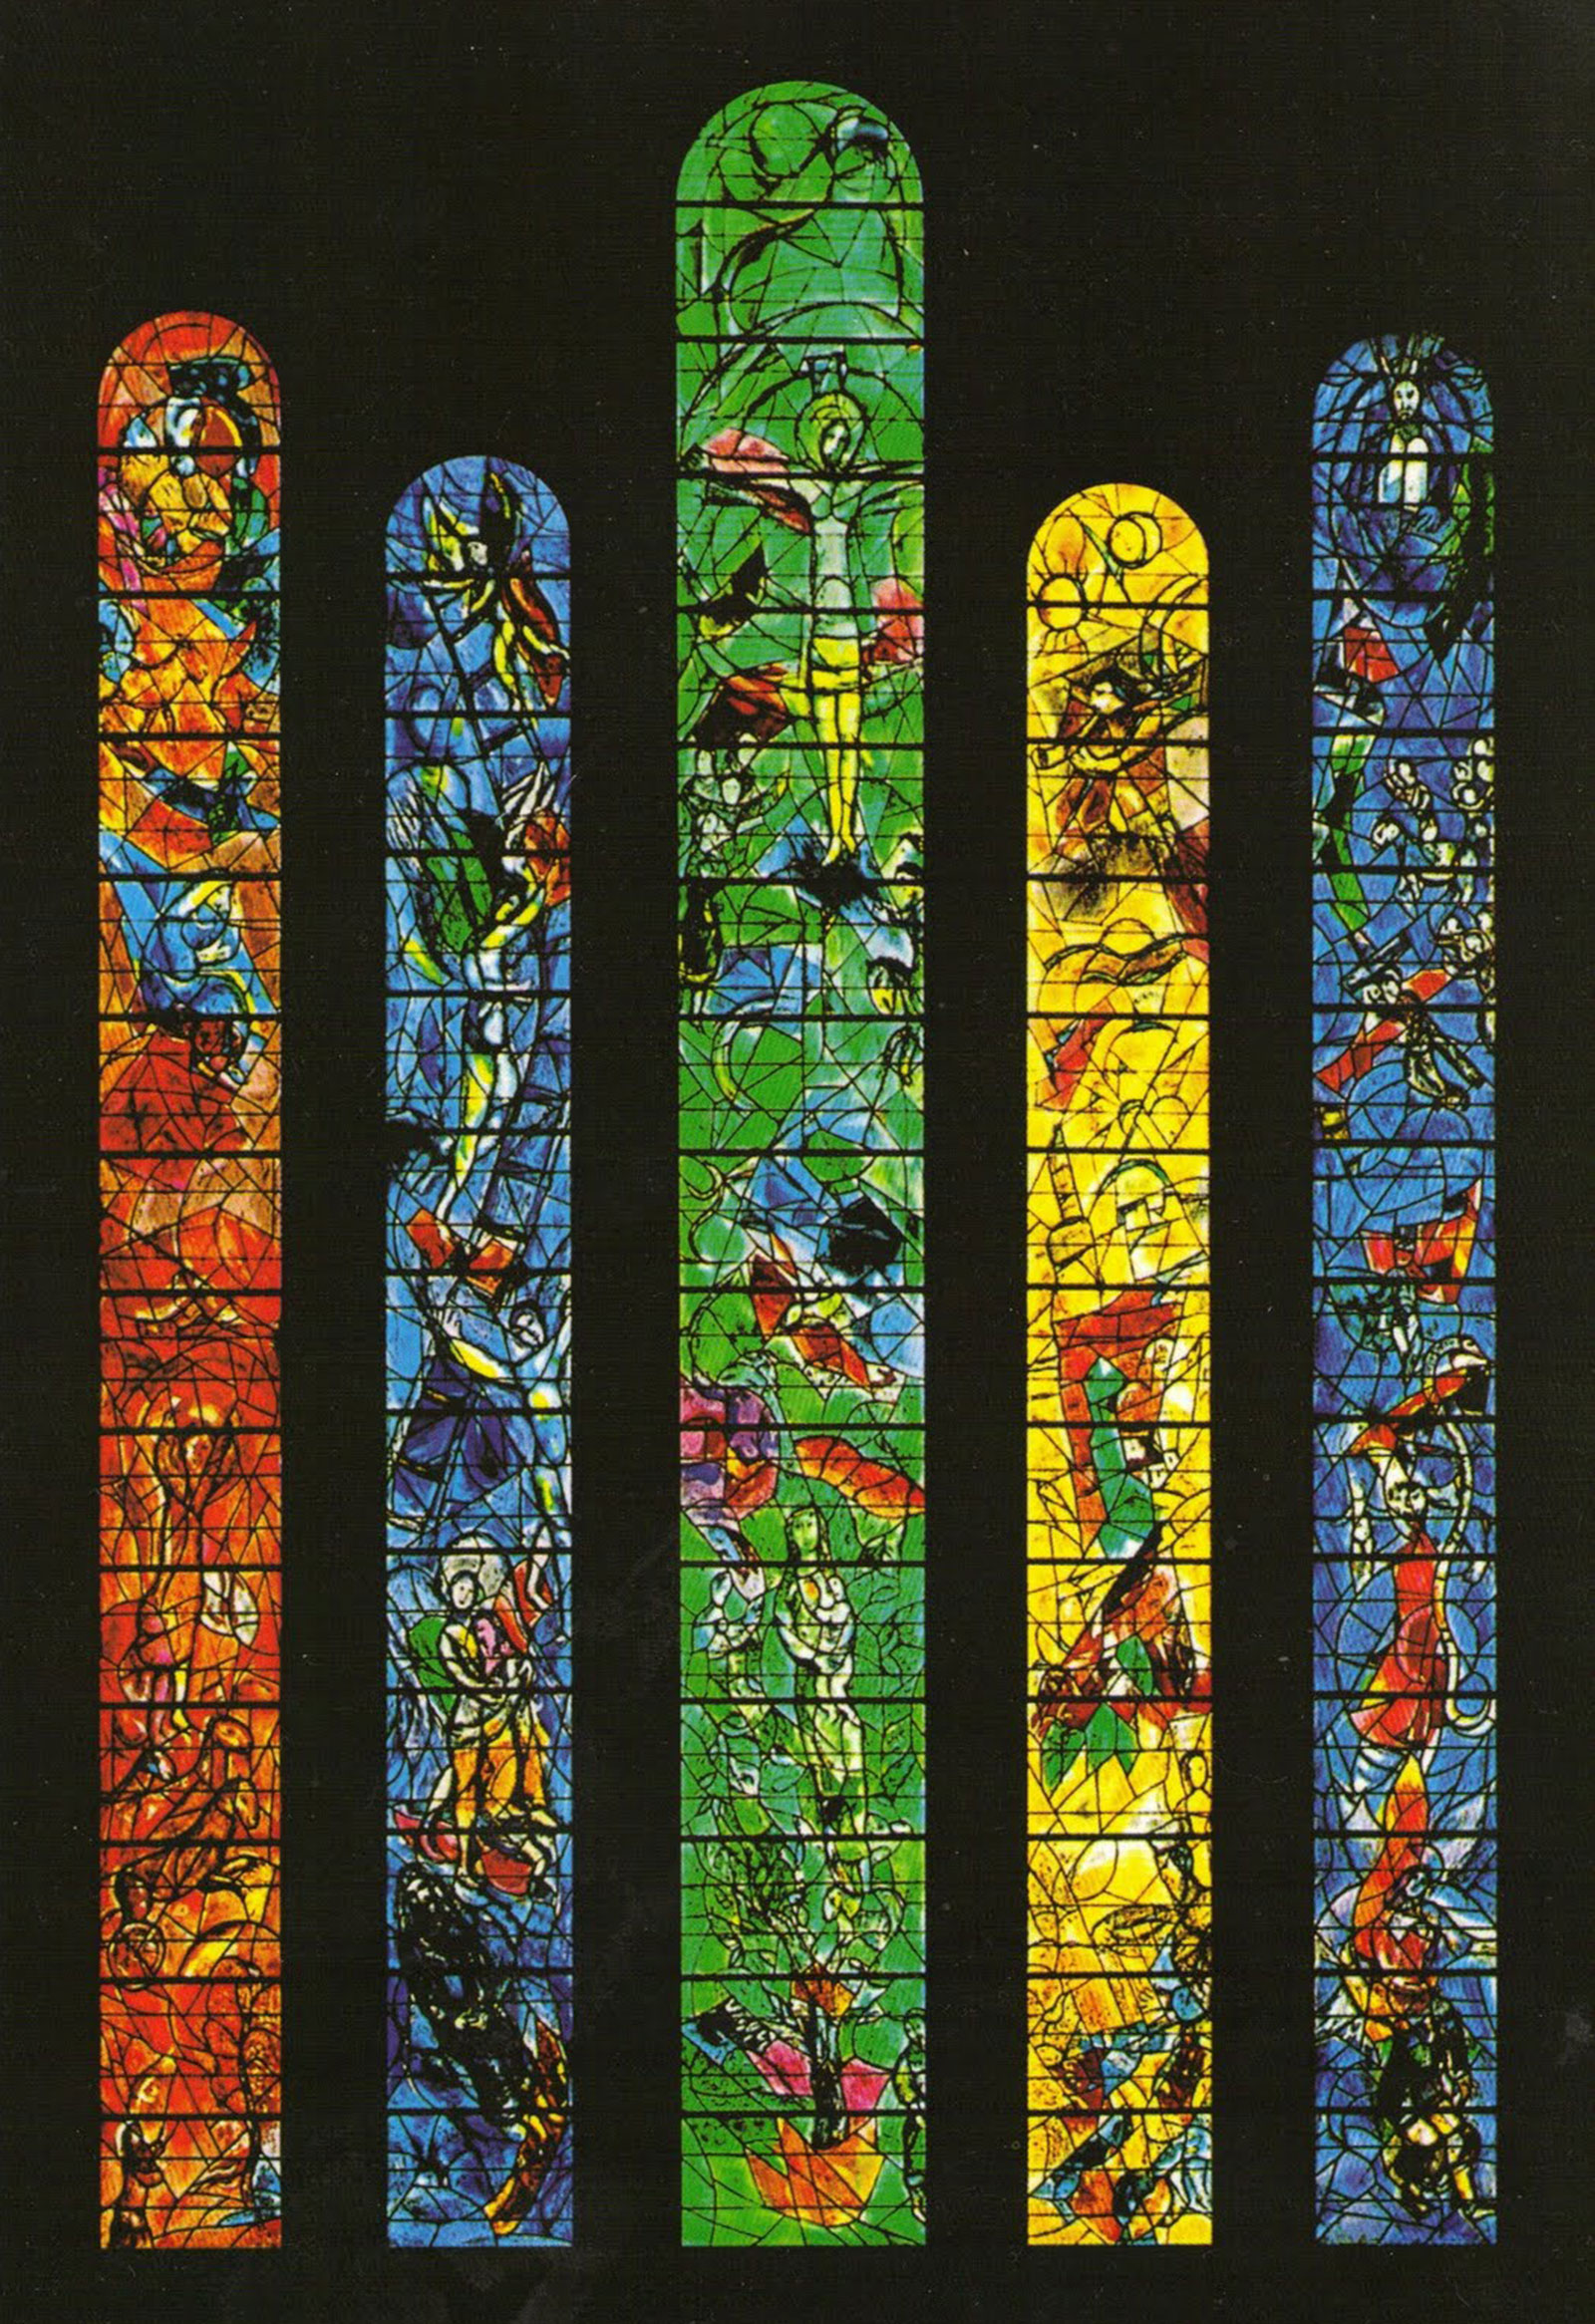 Stained-glass windows of the church choir of St. Stephen, Germany